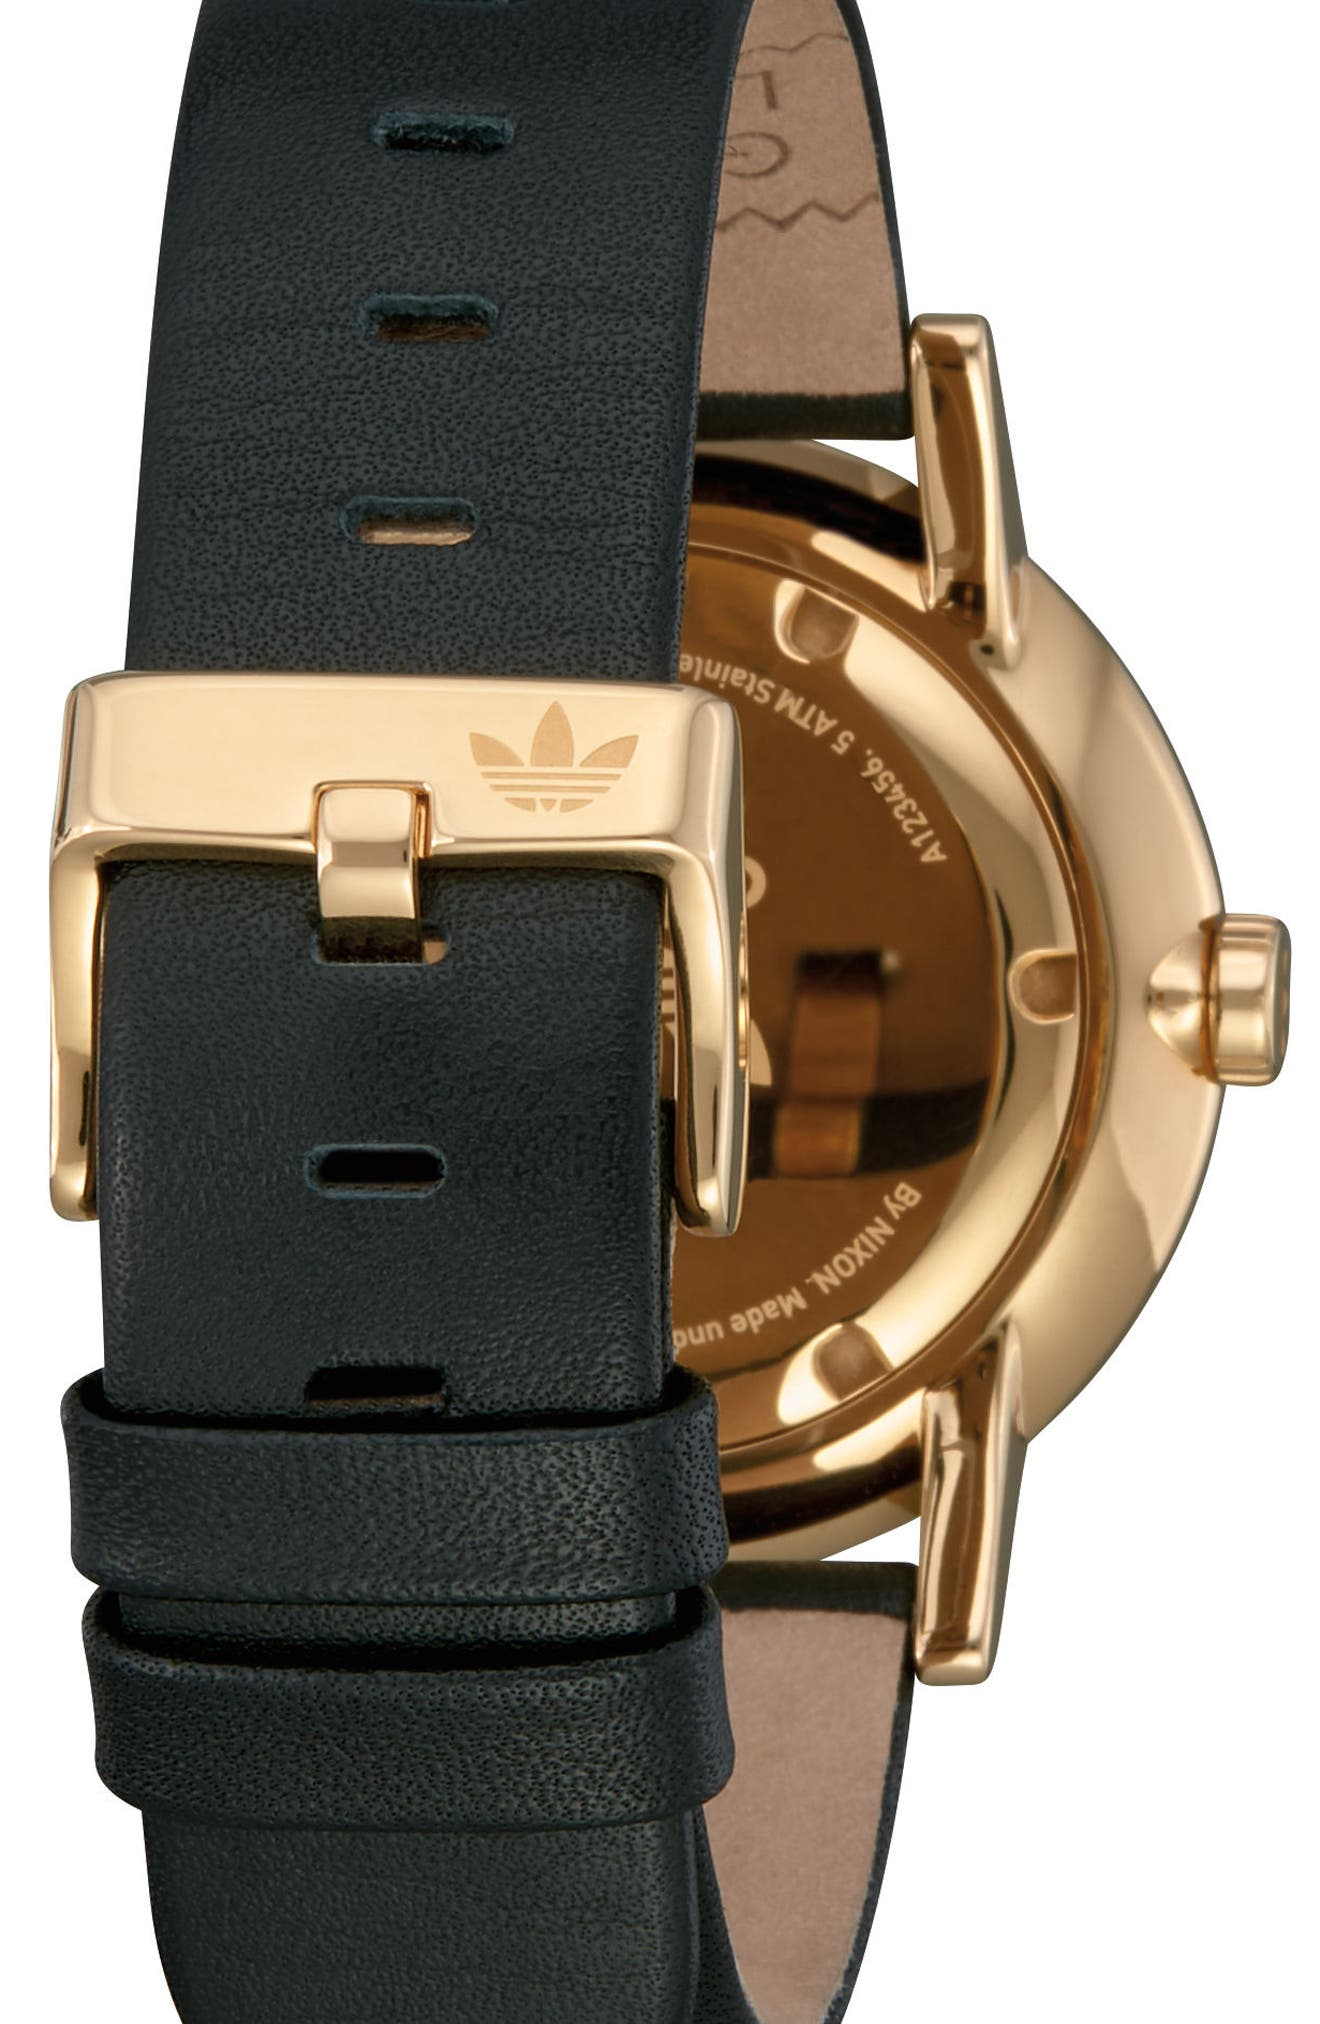 ADIDAS, District Leather Strap Watch, 40mm, Alternate thumbnail 2, color, GOLD/ BLACK